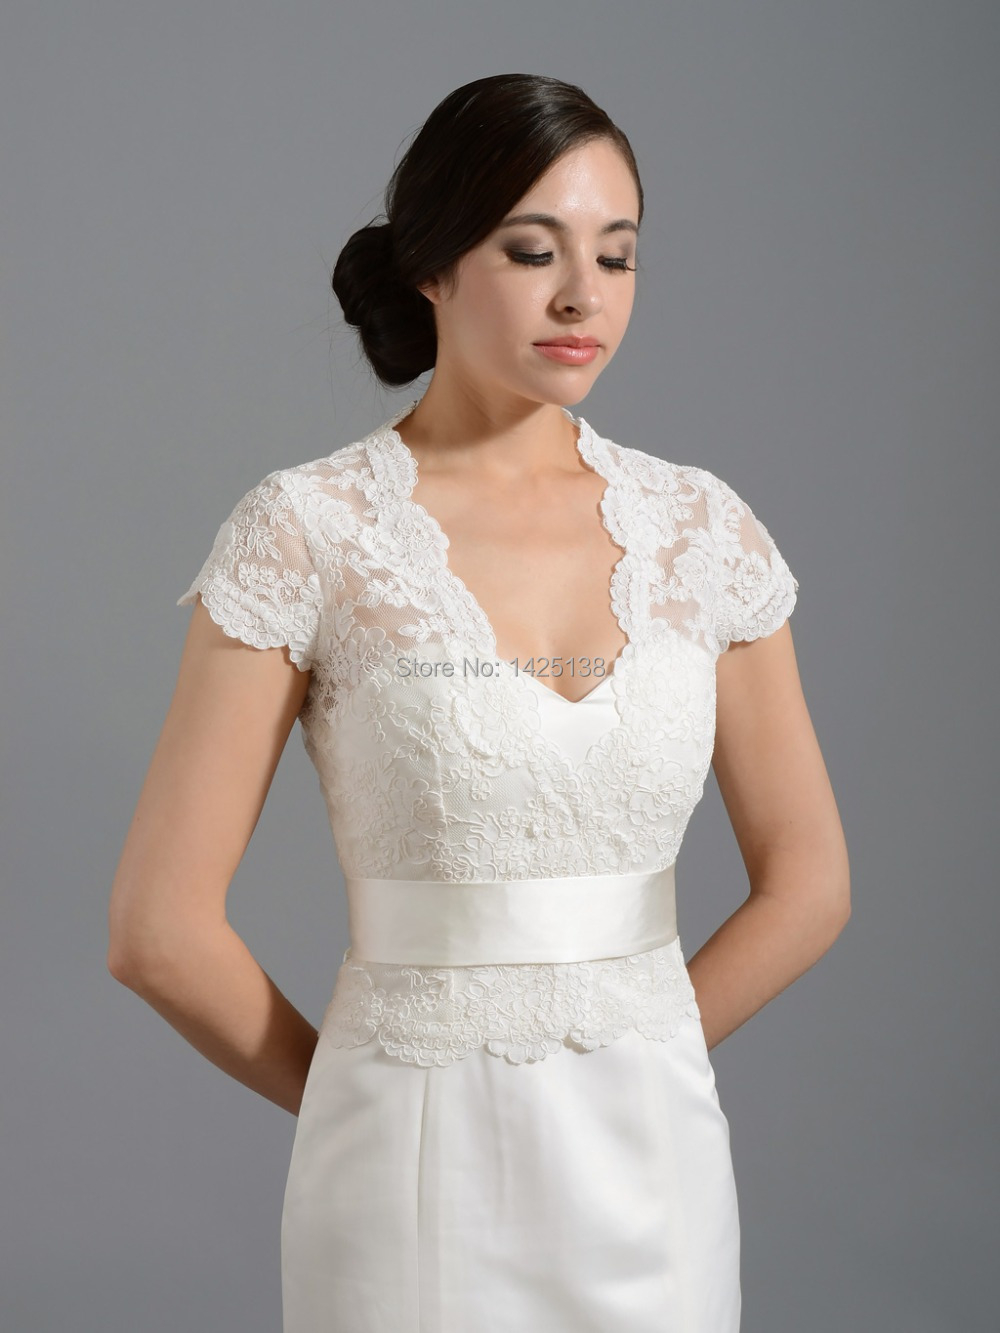 High quality charming ivory v neck cap sleeves lace for Wedding dress lace bolero